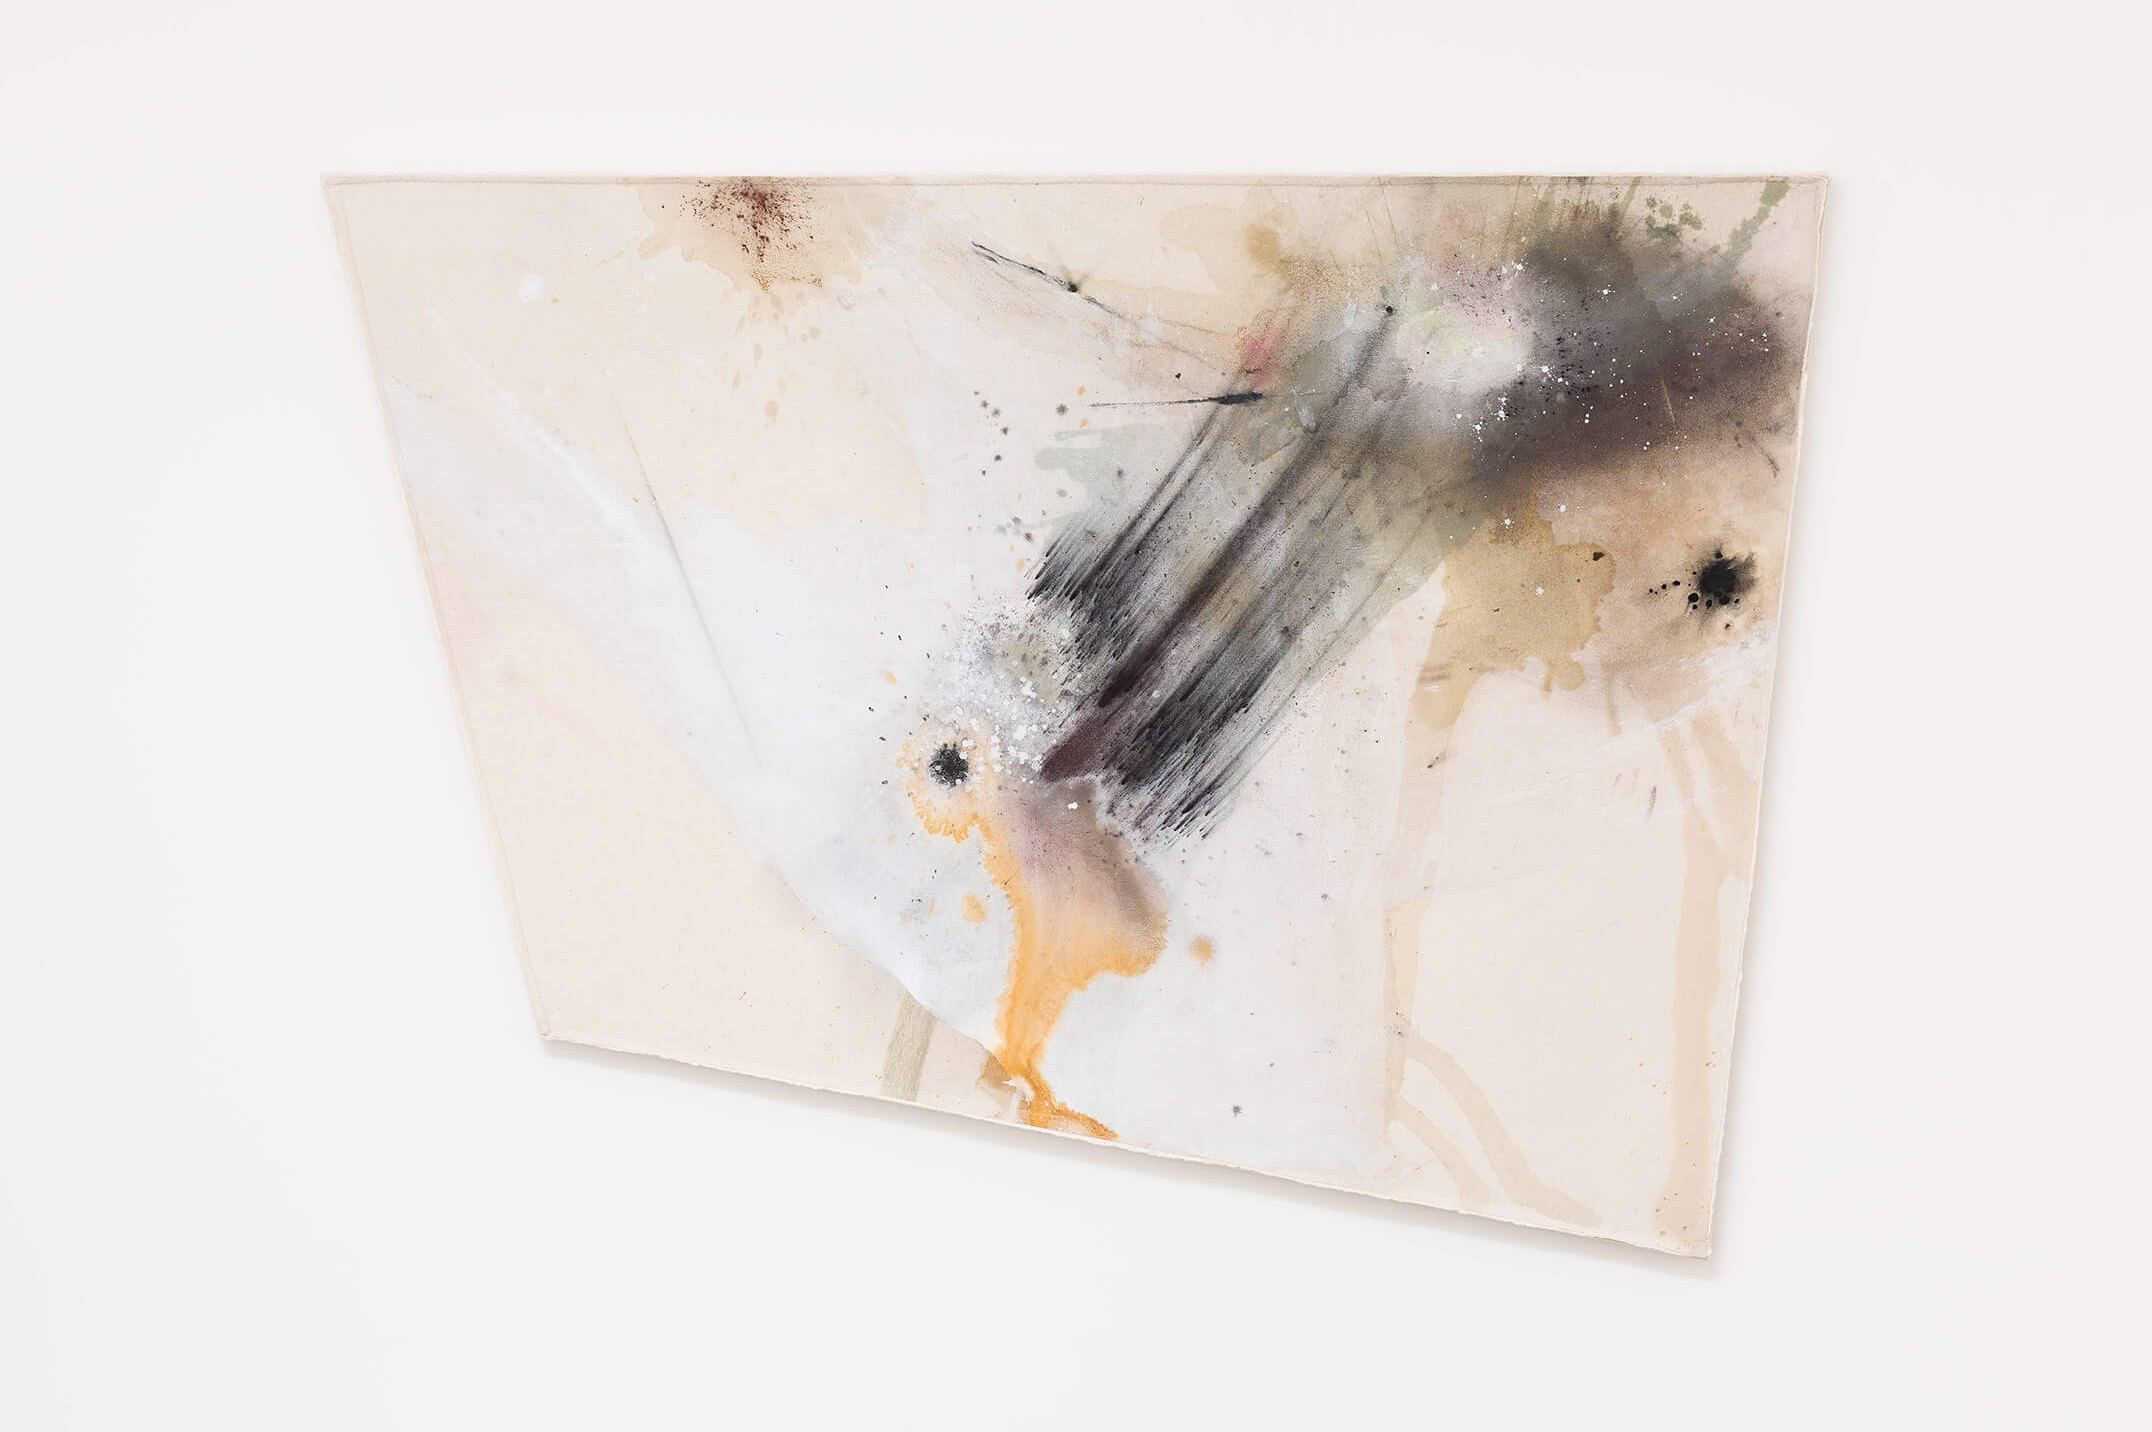 Lucy Dodd,&nbsp;<em>Cabo ' Galo Total</em>,&nbsp;2015,&nbsp;river Tinto water, squid ink, foss leaf extract, Verona green earth, hematite, yerbe mate, graphite and mixed pigments on canvas, 132 × 182 × 4 cm - Mendes Wood DM